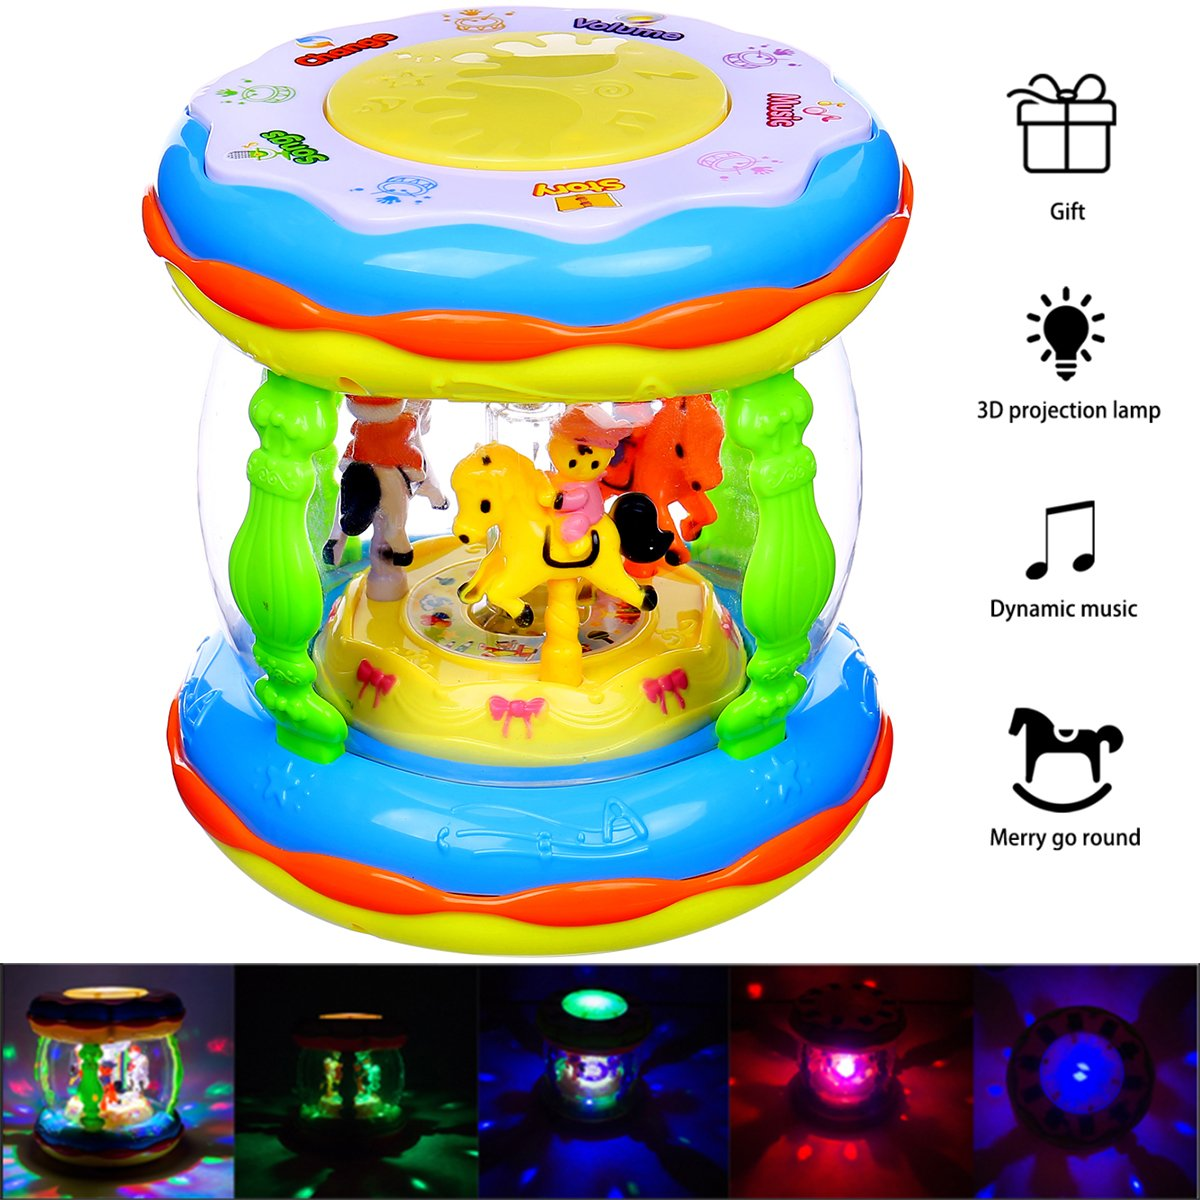 Baby Toys & HXSNEW Musical Toys , Toddler toys & Childrens Favorite Colorful Projection Lights & Musical Learning Entertainment Kids Drum Set ,toys for 1-3 year old (Medium Size)